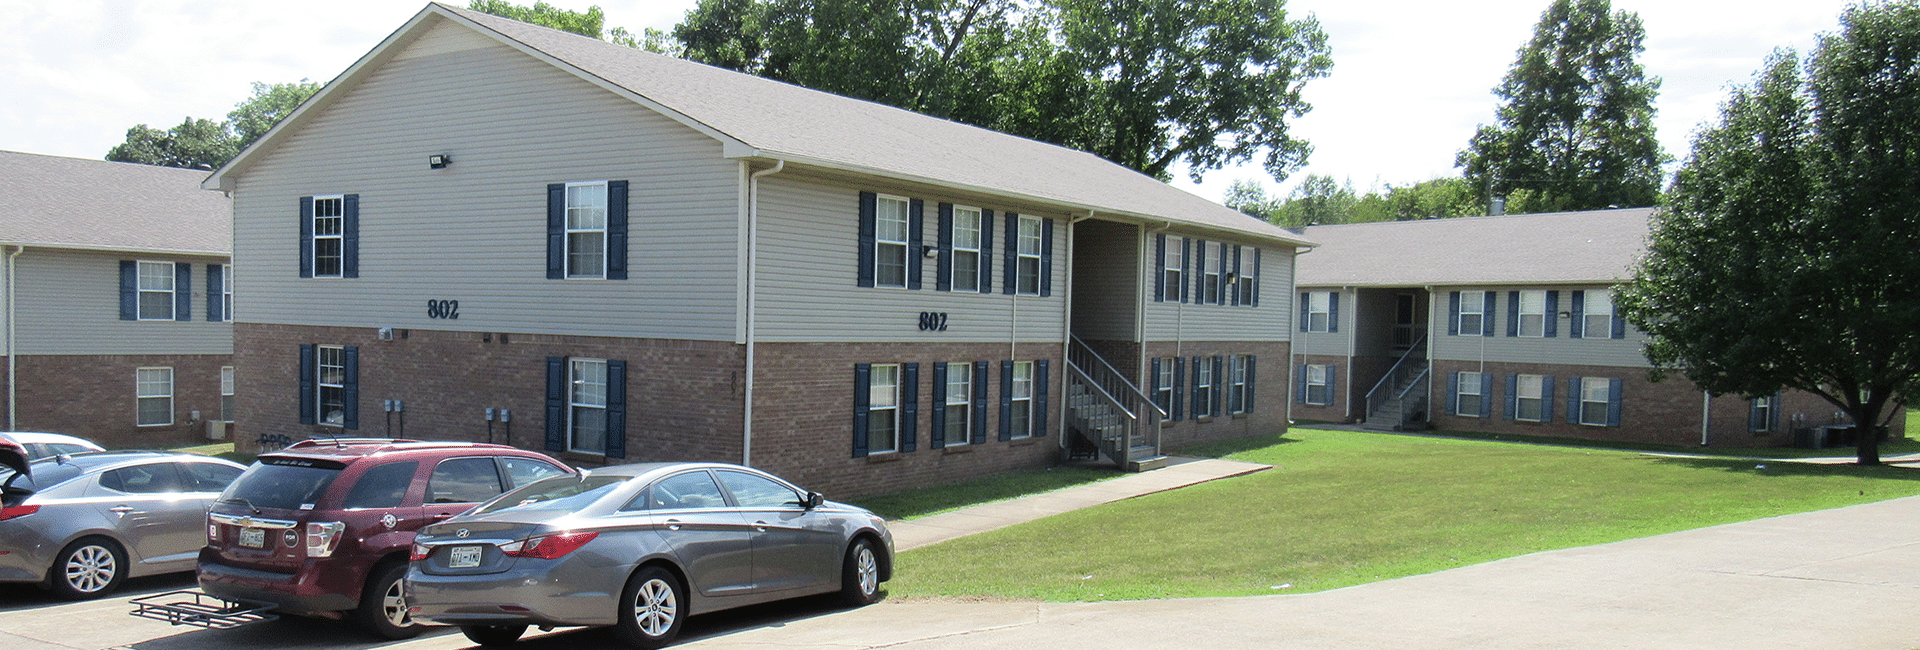 Cobblestone Apartments Apartments In Clarksville Tennessee